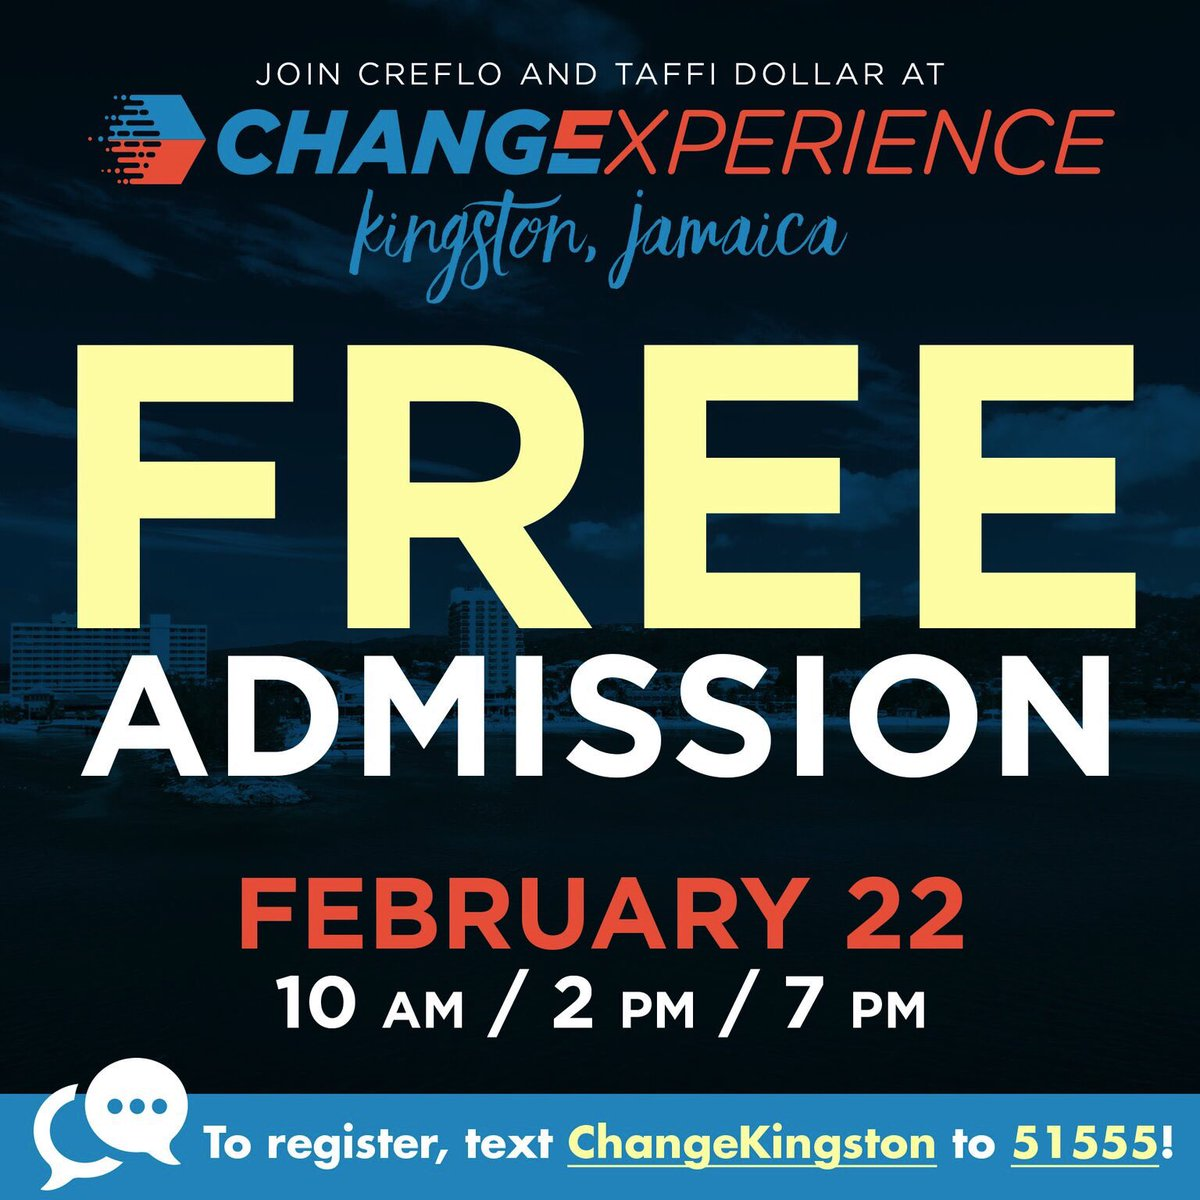 Kingston, Jamaica get ready for Change Experience 2019, Friday, 22 February, at Pegasus Hotel. We'll share three life-changing messages @ 10am, 2pm & 7pm. Register NOW! FREE event. …https://changeexperience2019kingston.eventbrite.com  #ChangeExperience2019 #WorldChangers #WorldChangersChurchInternational